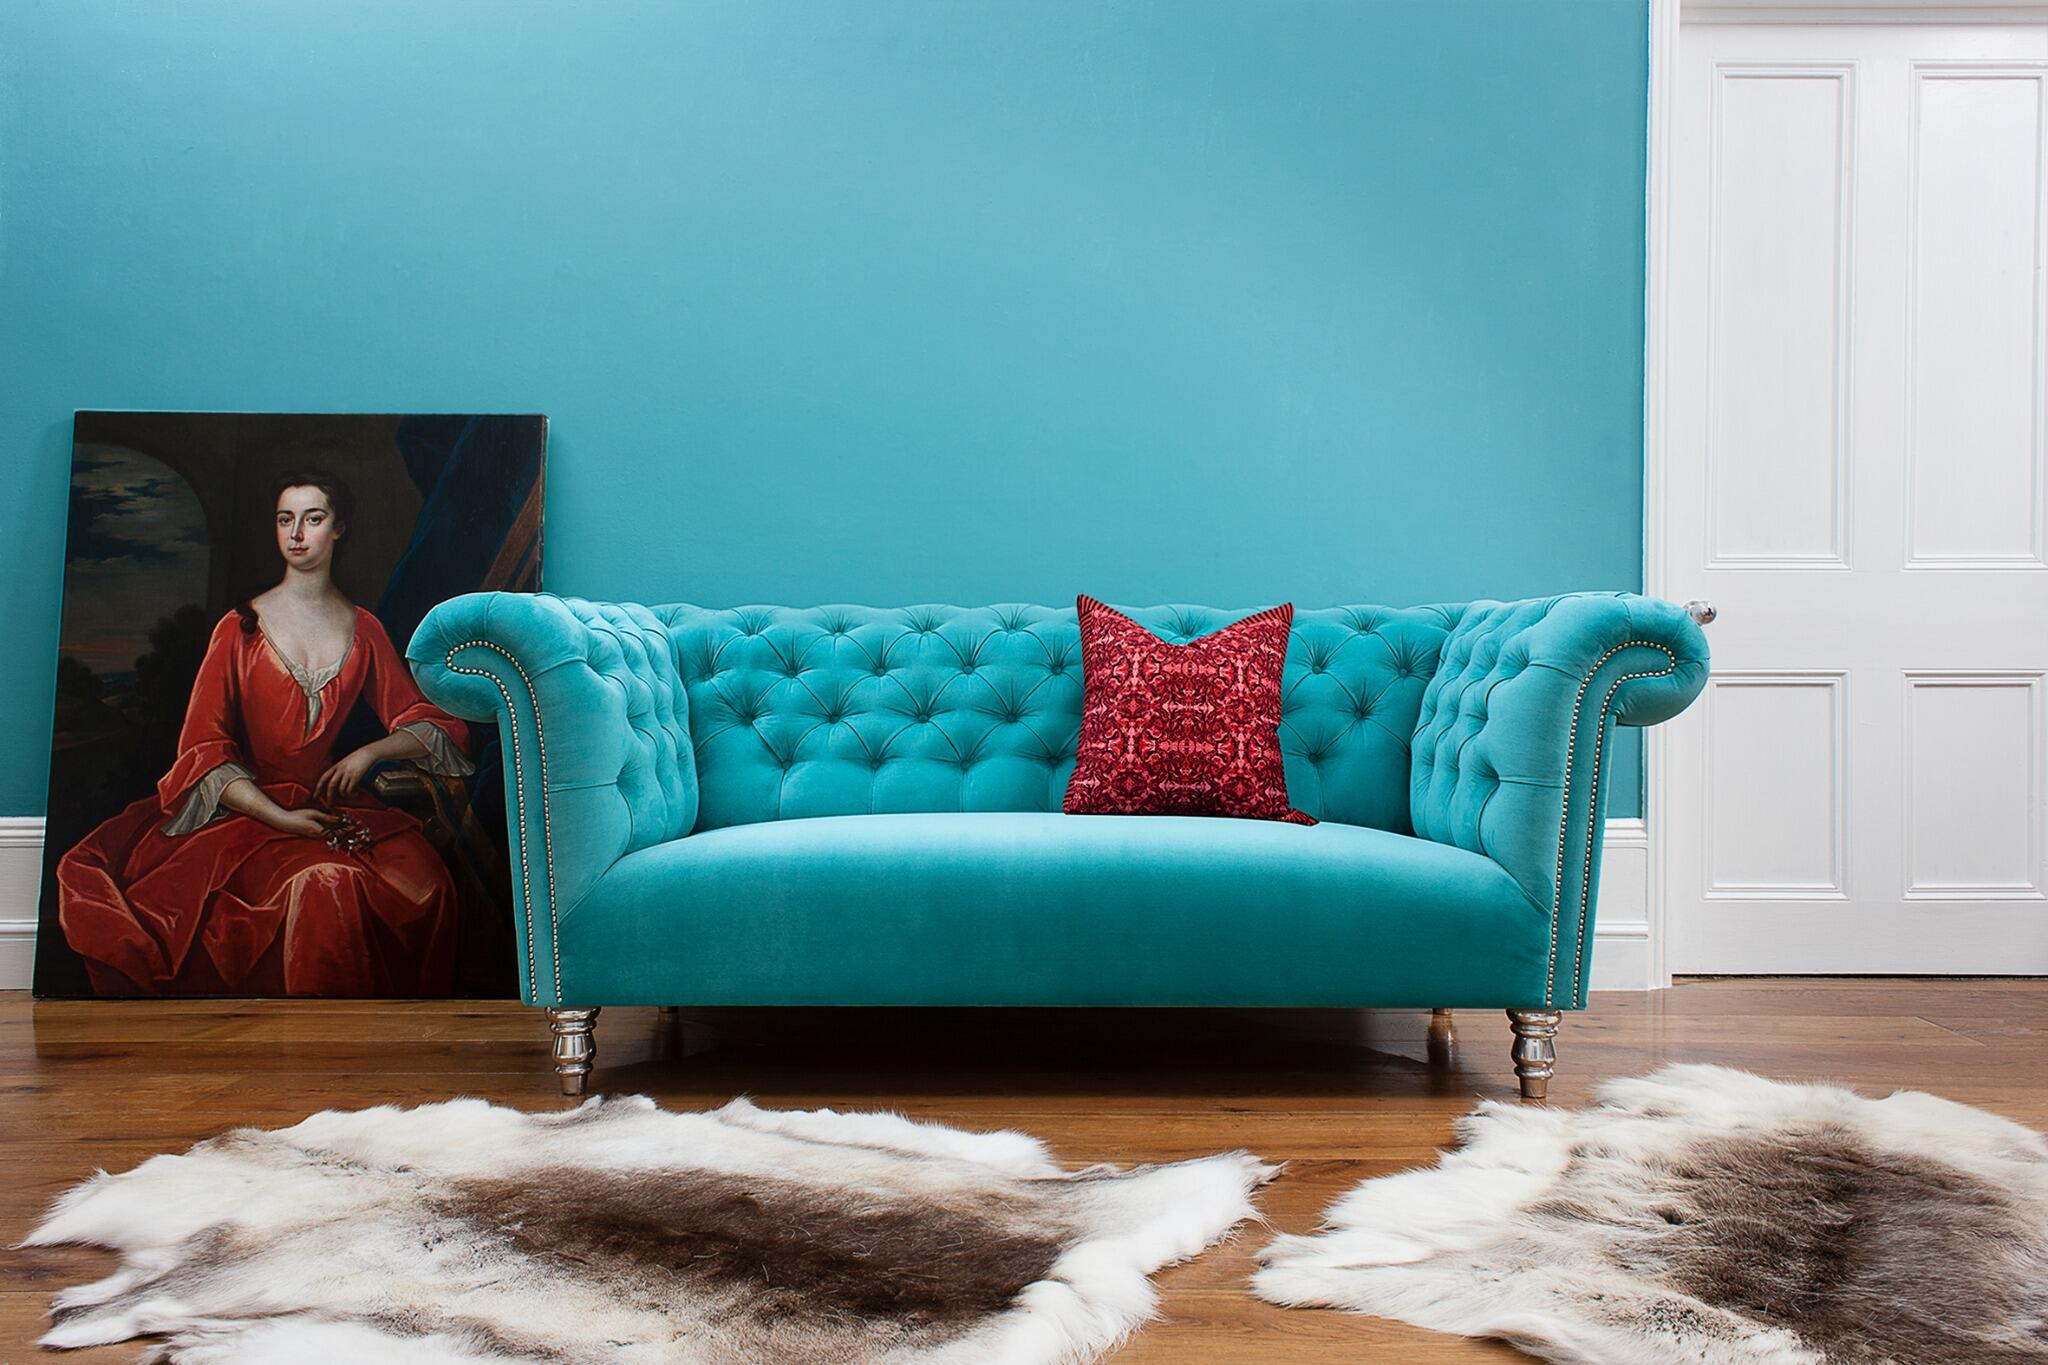 Bespoke Sofa On Twitter Attractive Turquoise Chesterfield Sofa